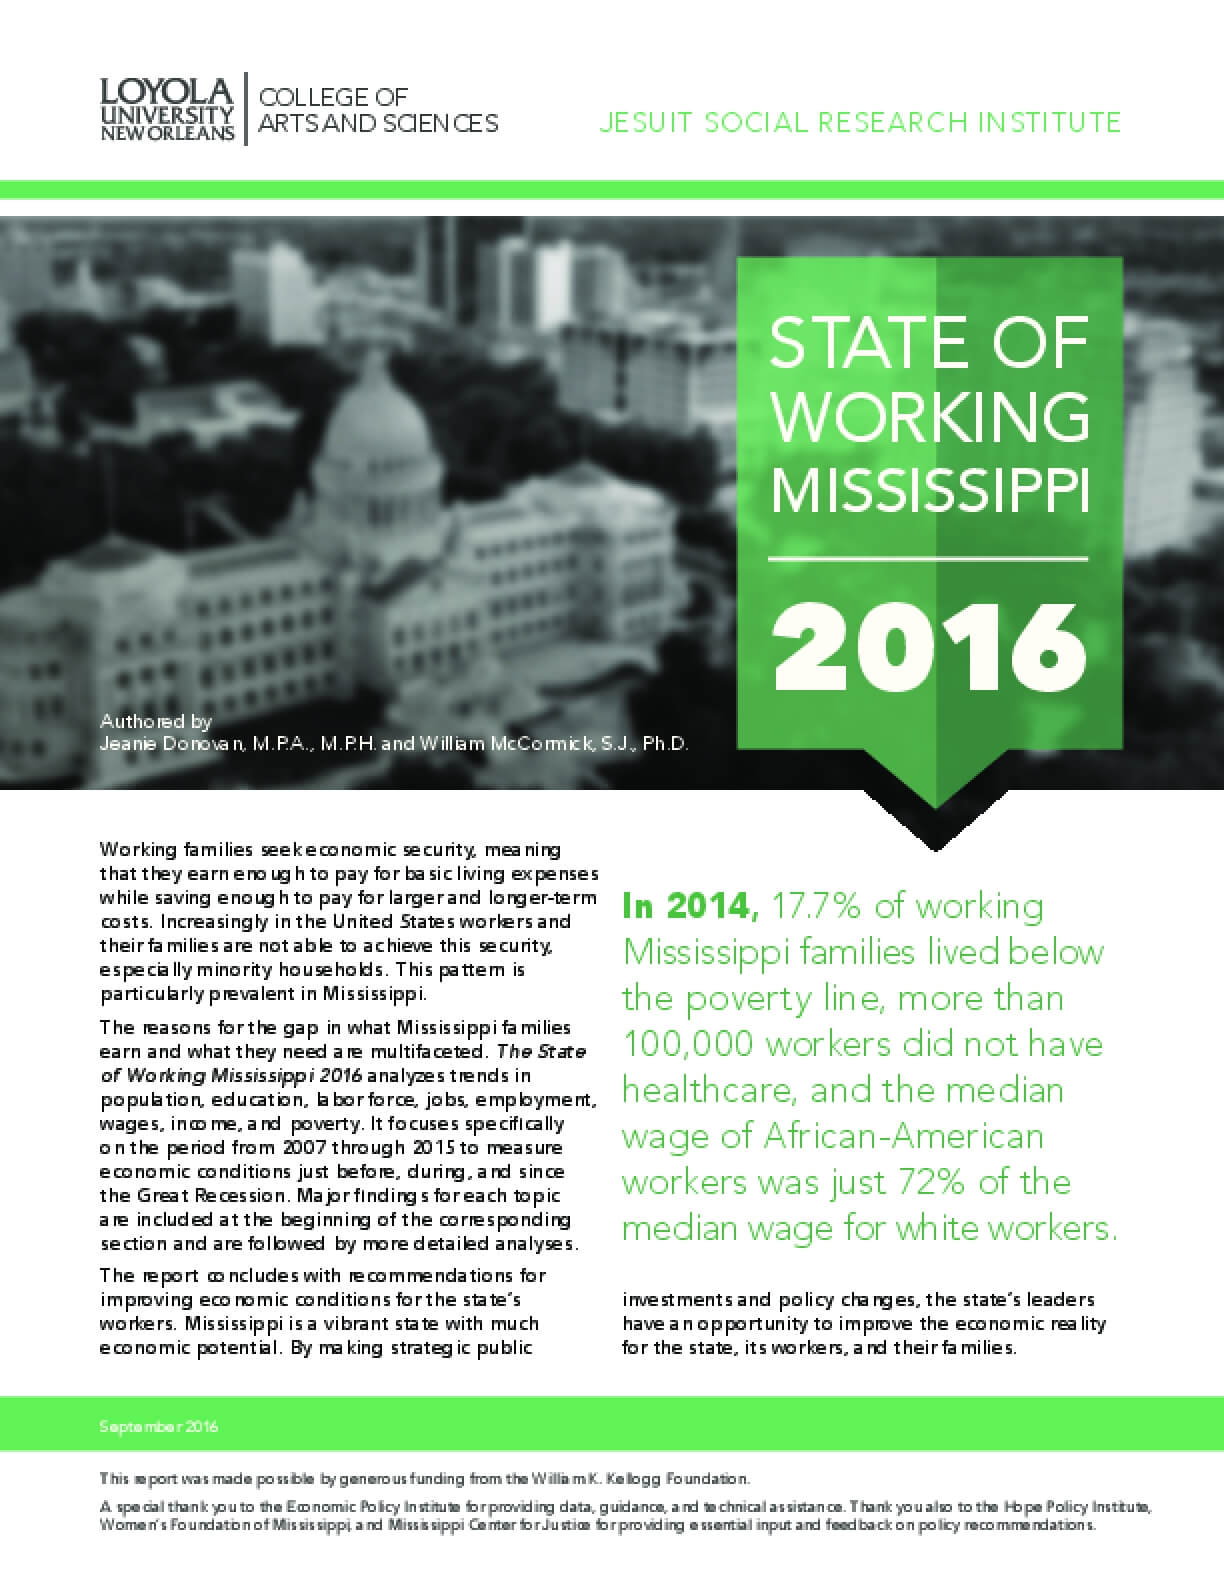 State of Working Mississippi 2016